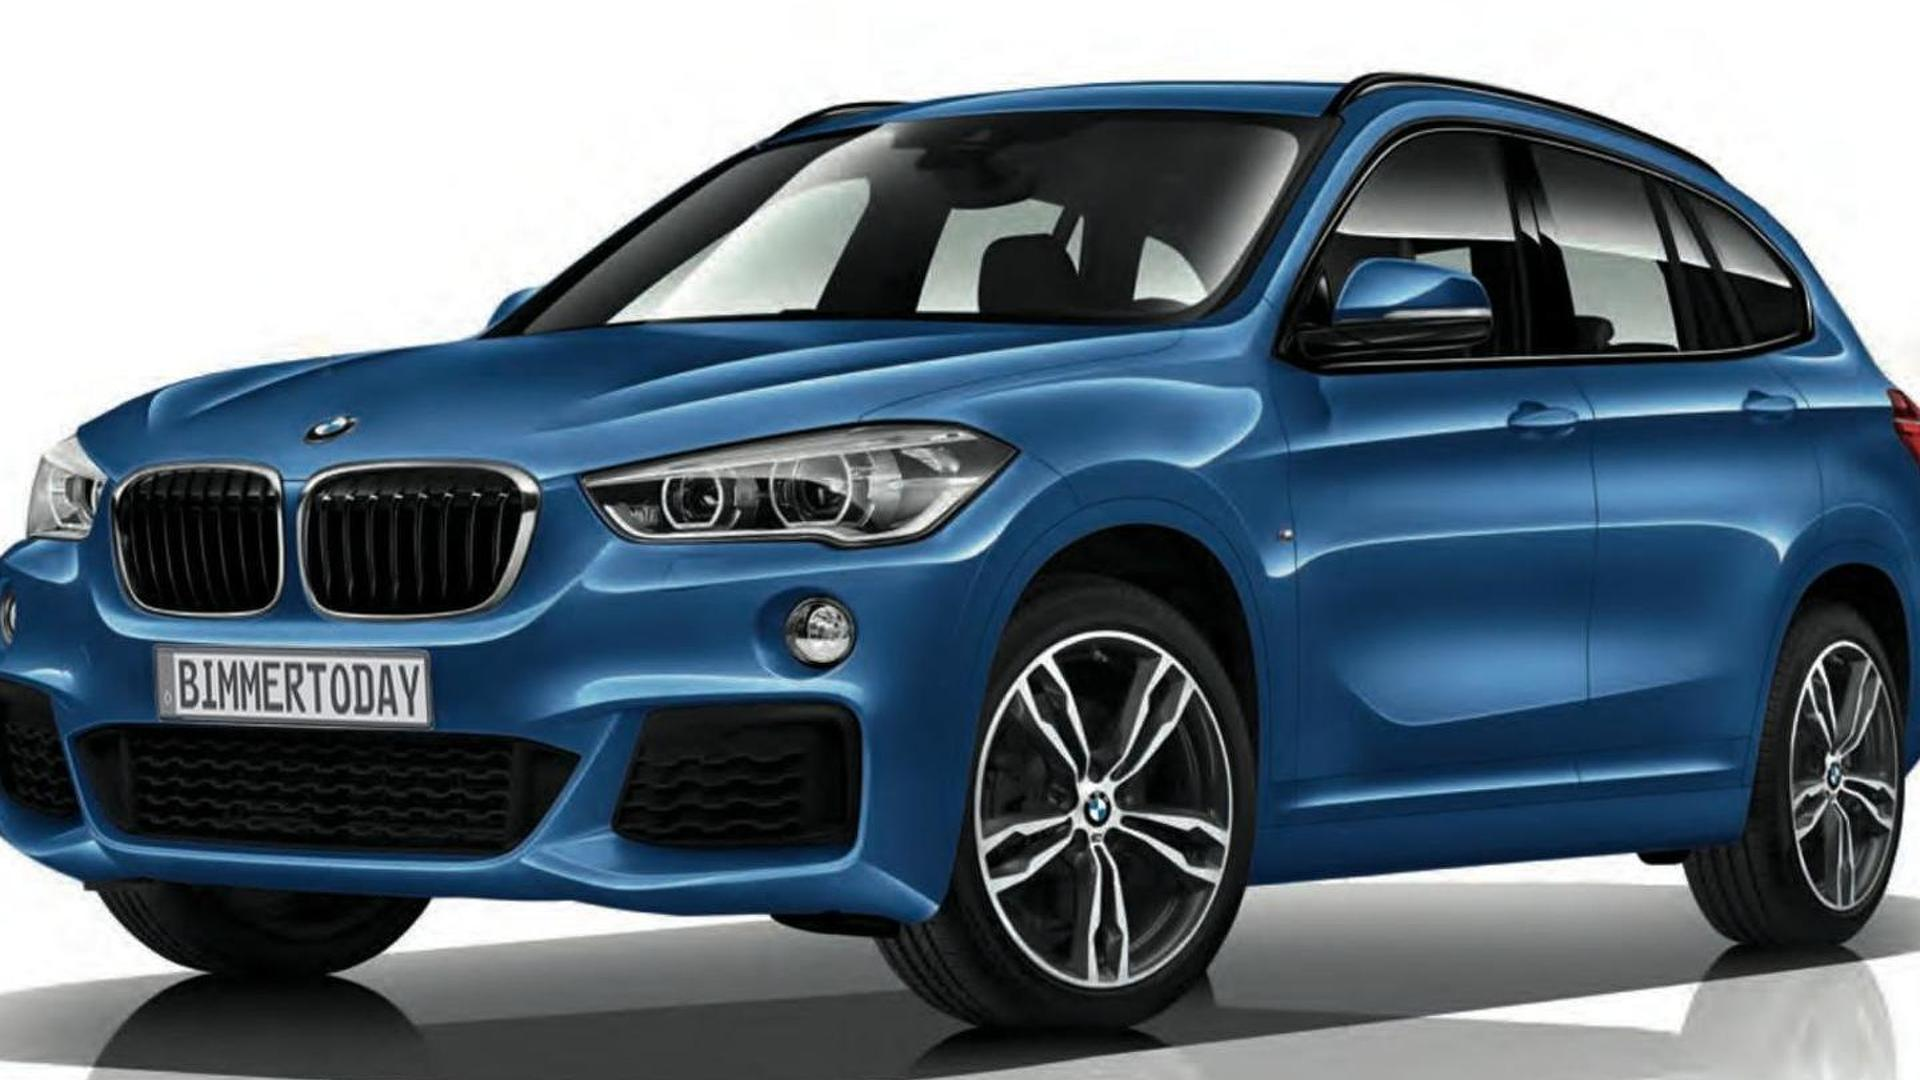 Bmw Dresses Up Second Generation X1 With M Sport Package